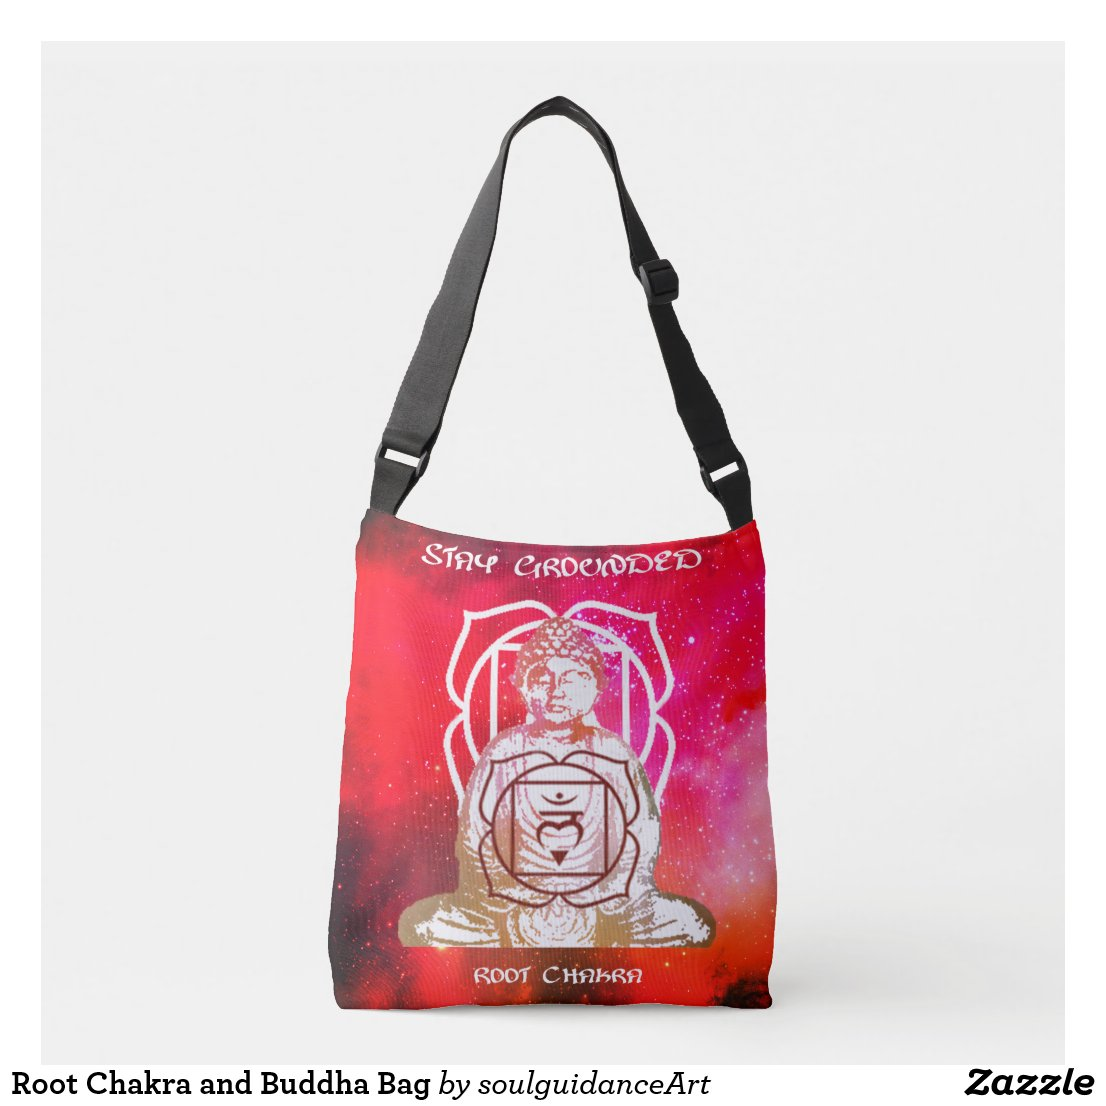 Root Chakra and Buddha Bag